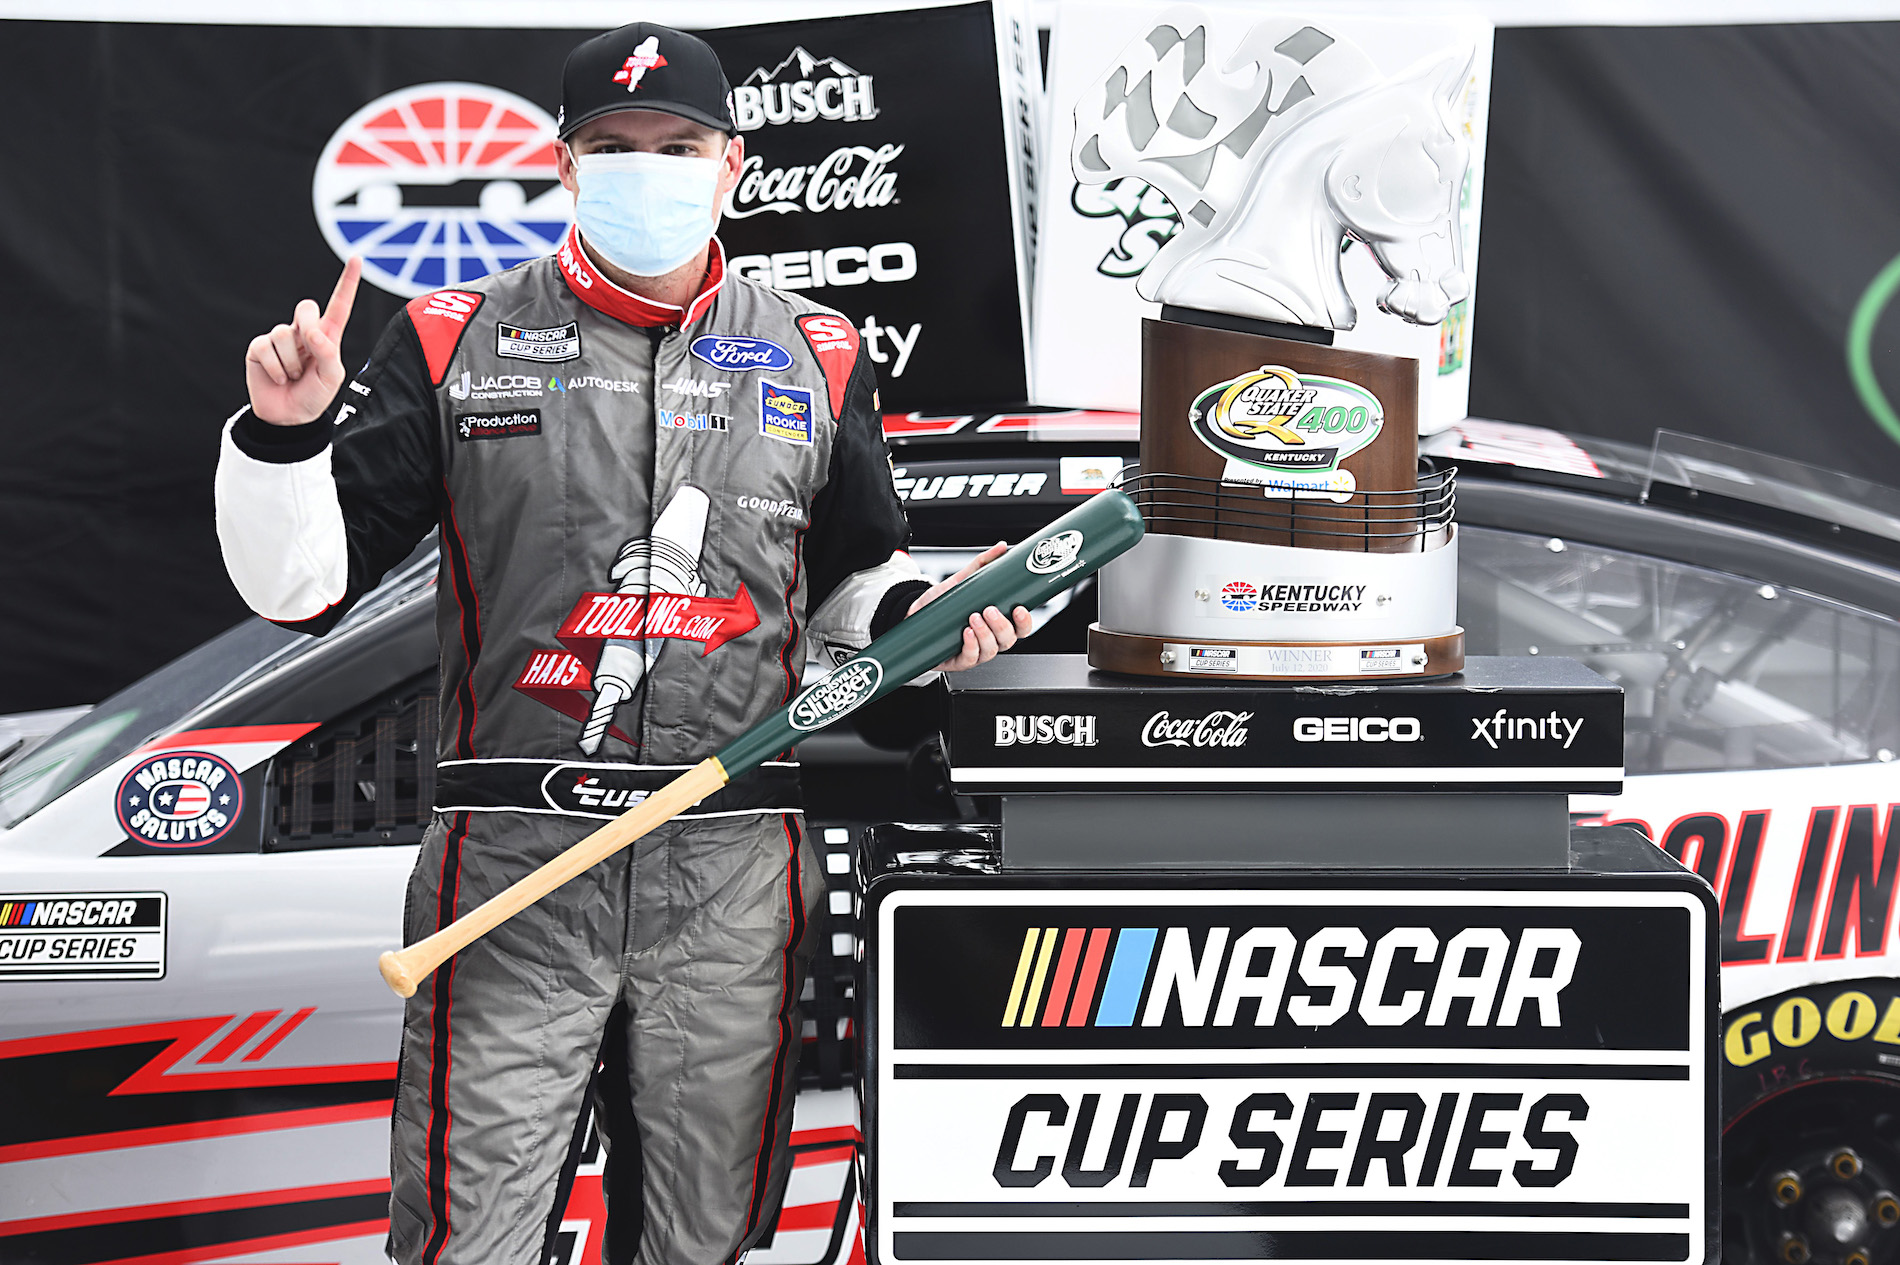 Cole Custer was a 250/1 longshot to win NASCAR's Quaker State 400 on Sunday, and his unlikely win made one lucky bettor a fortune.